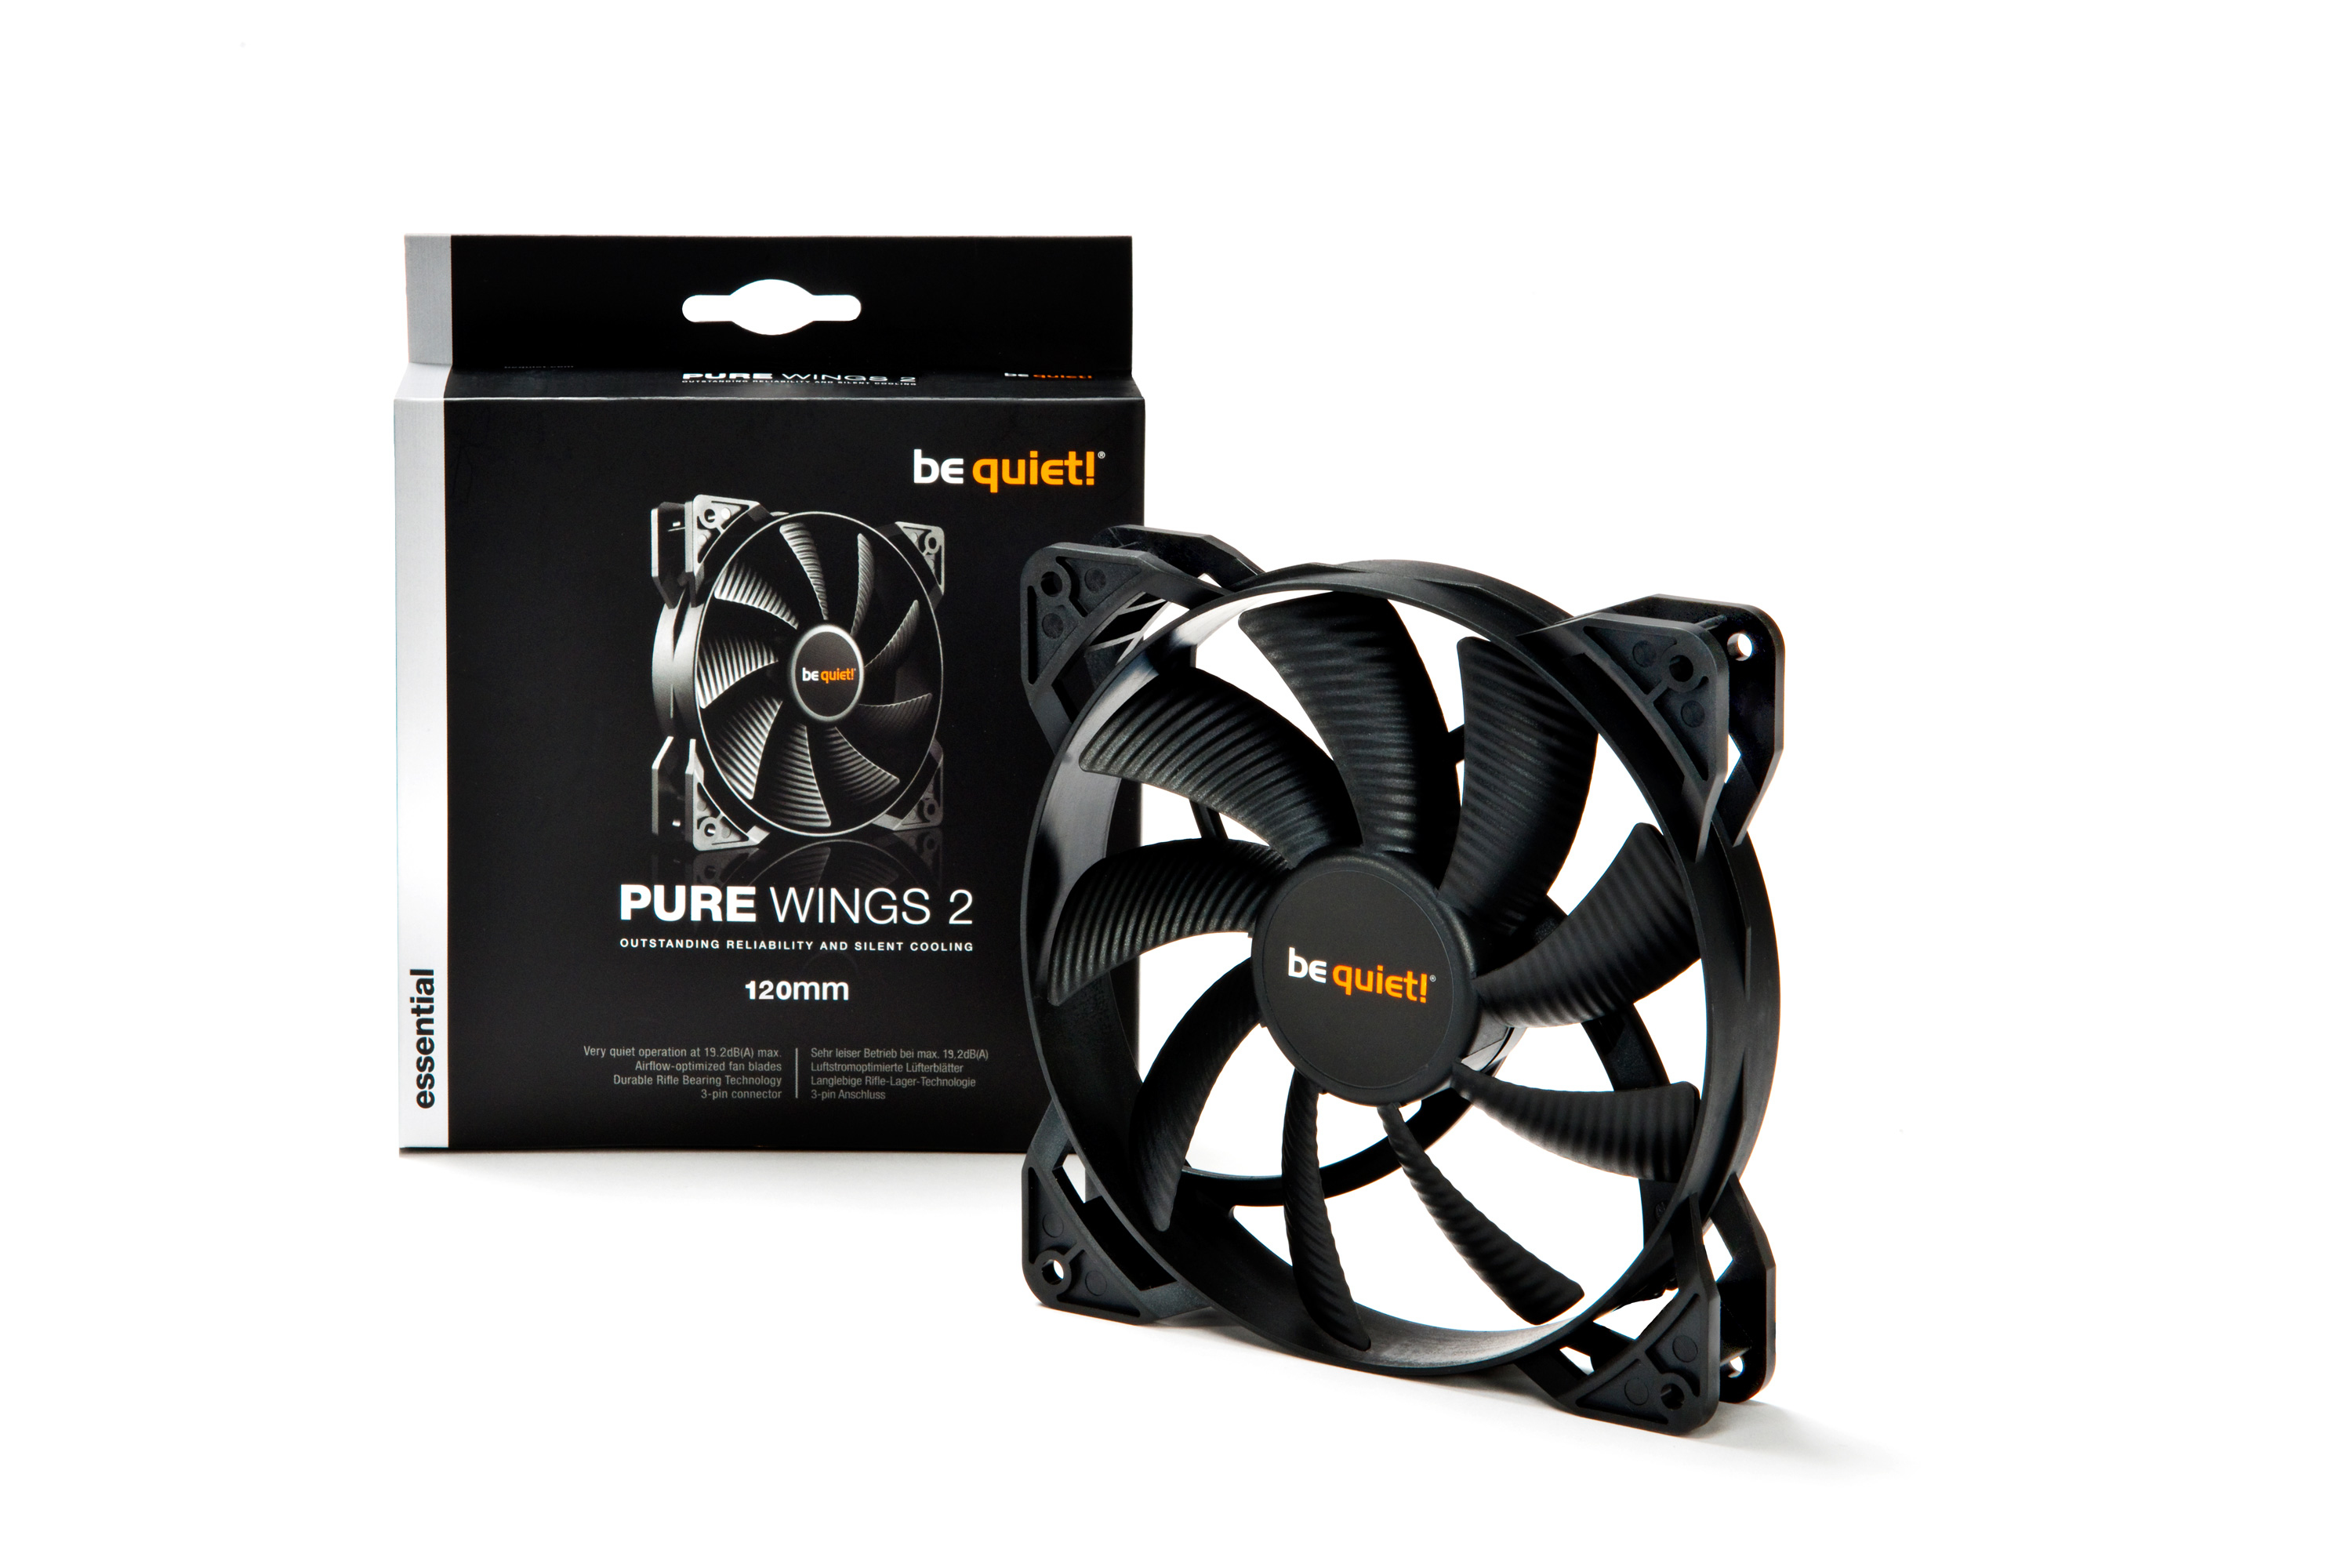 be quiet! Pure Wings 2 120mm, 120x120x25, 1500 rpm, 19,2 dB, 51,4 cfm, 3 pin